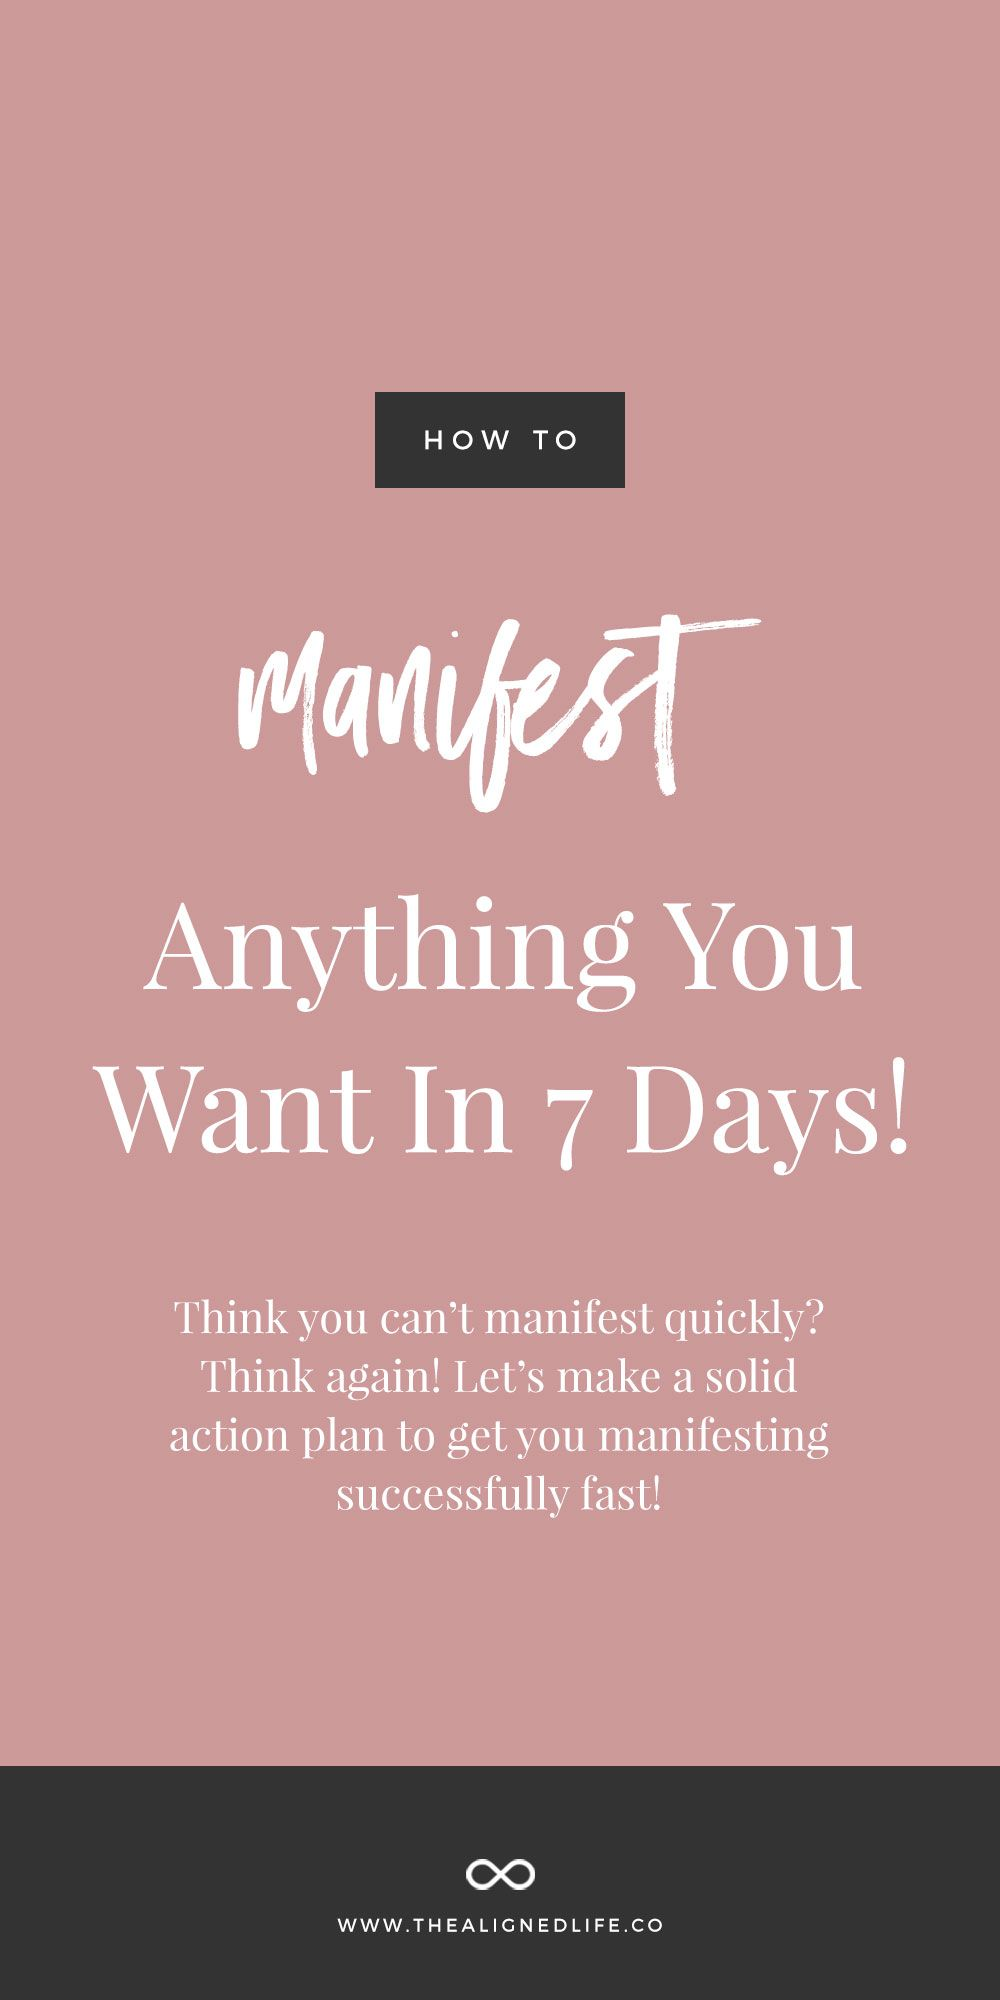 [ LoA 101 Series ] How To Manifest Anything You Want In 7